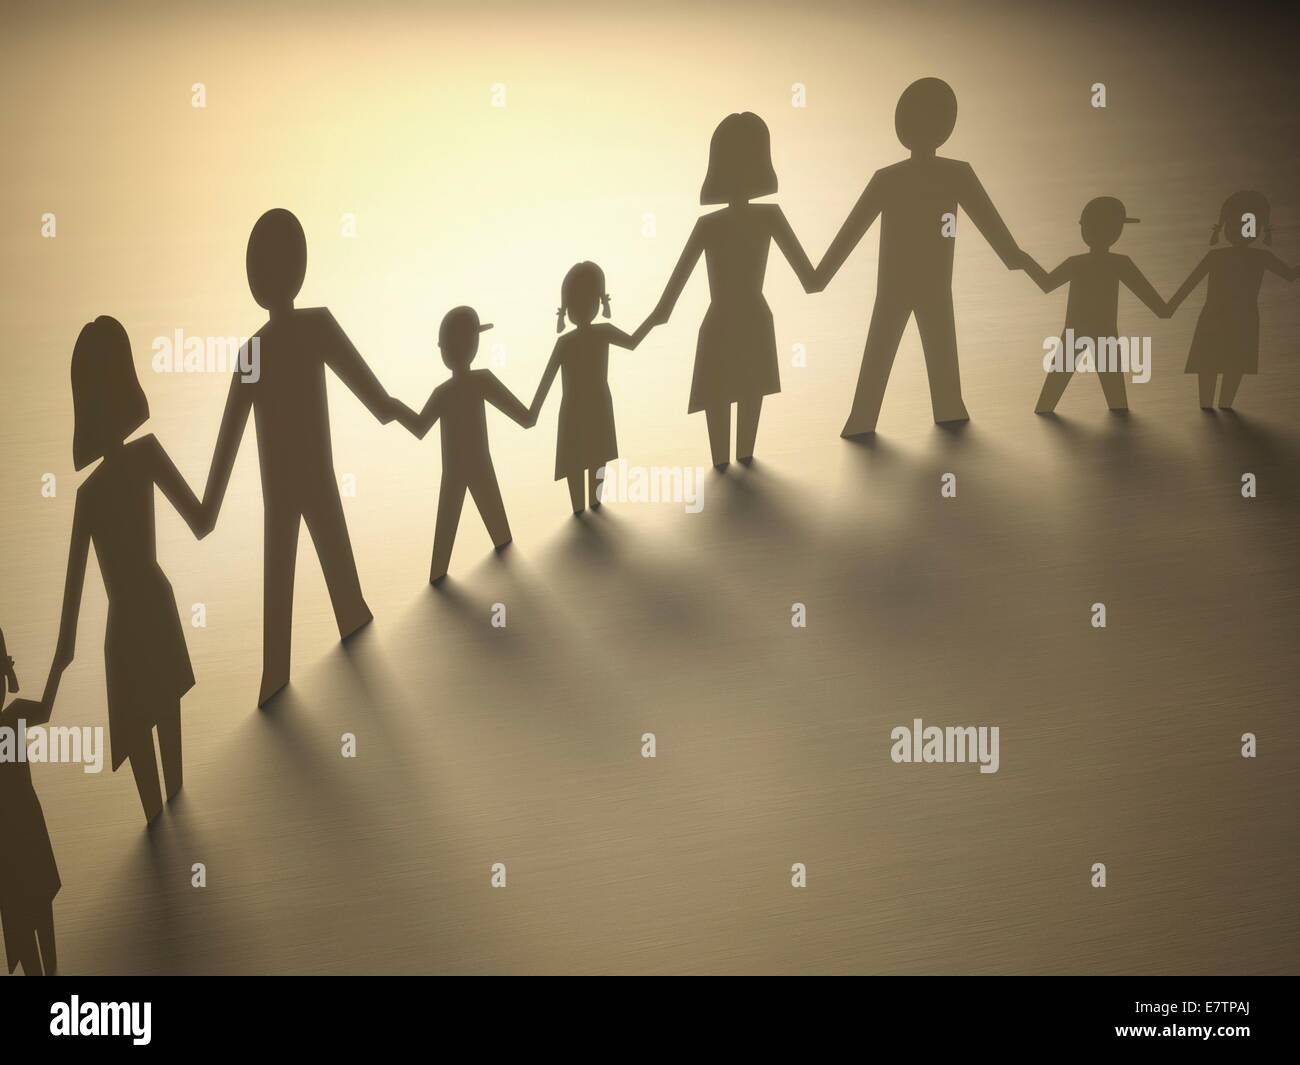 Paper chain of family, computer artwork. - Stock Image